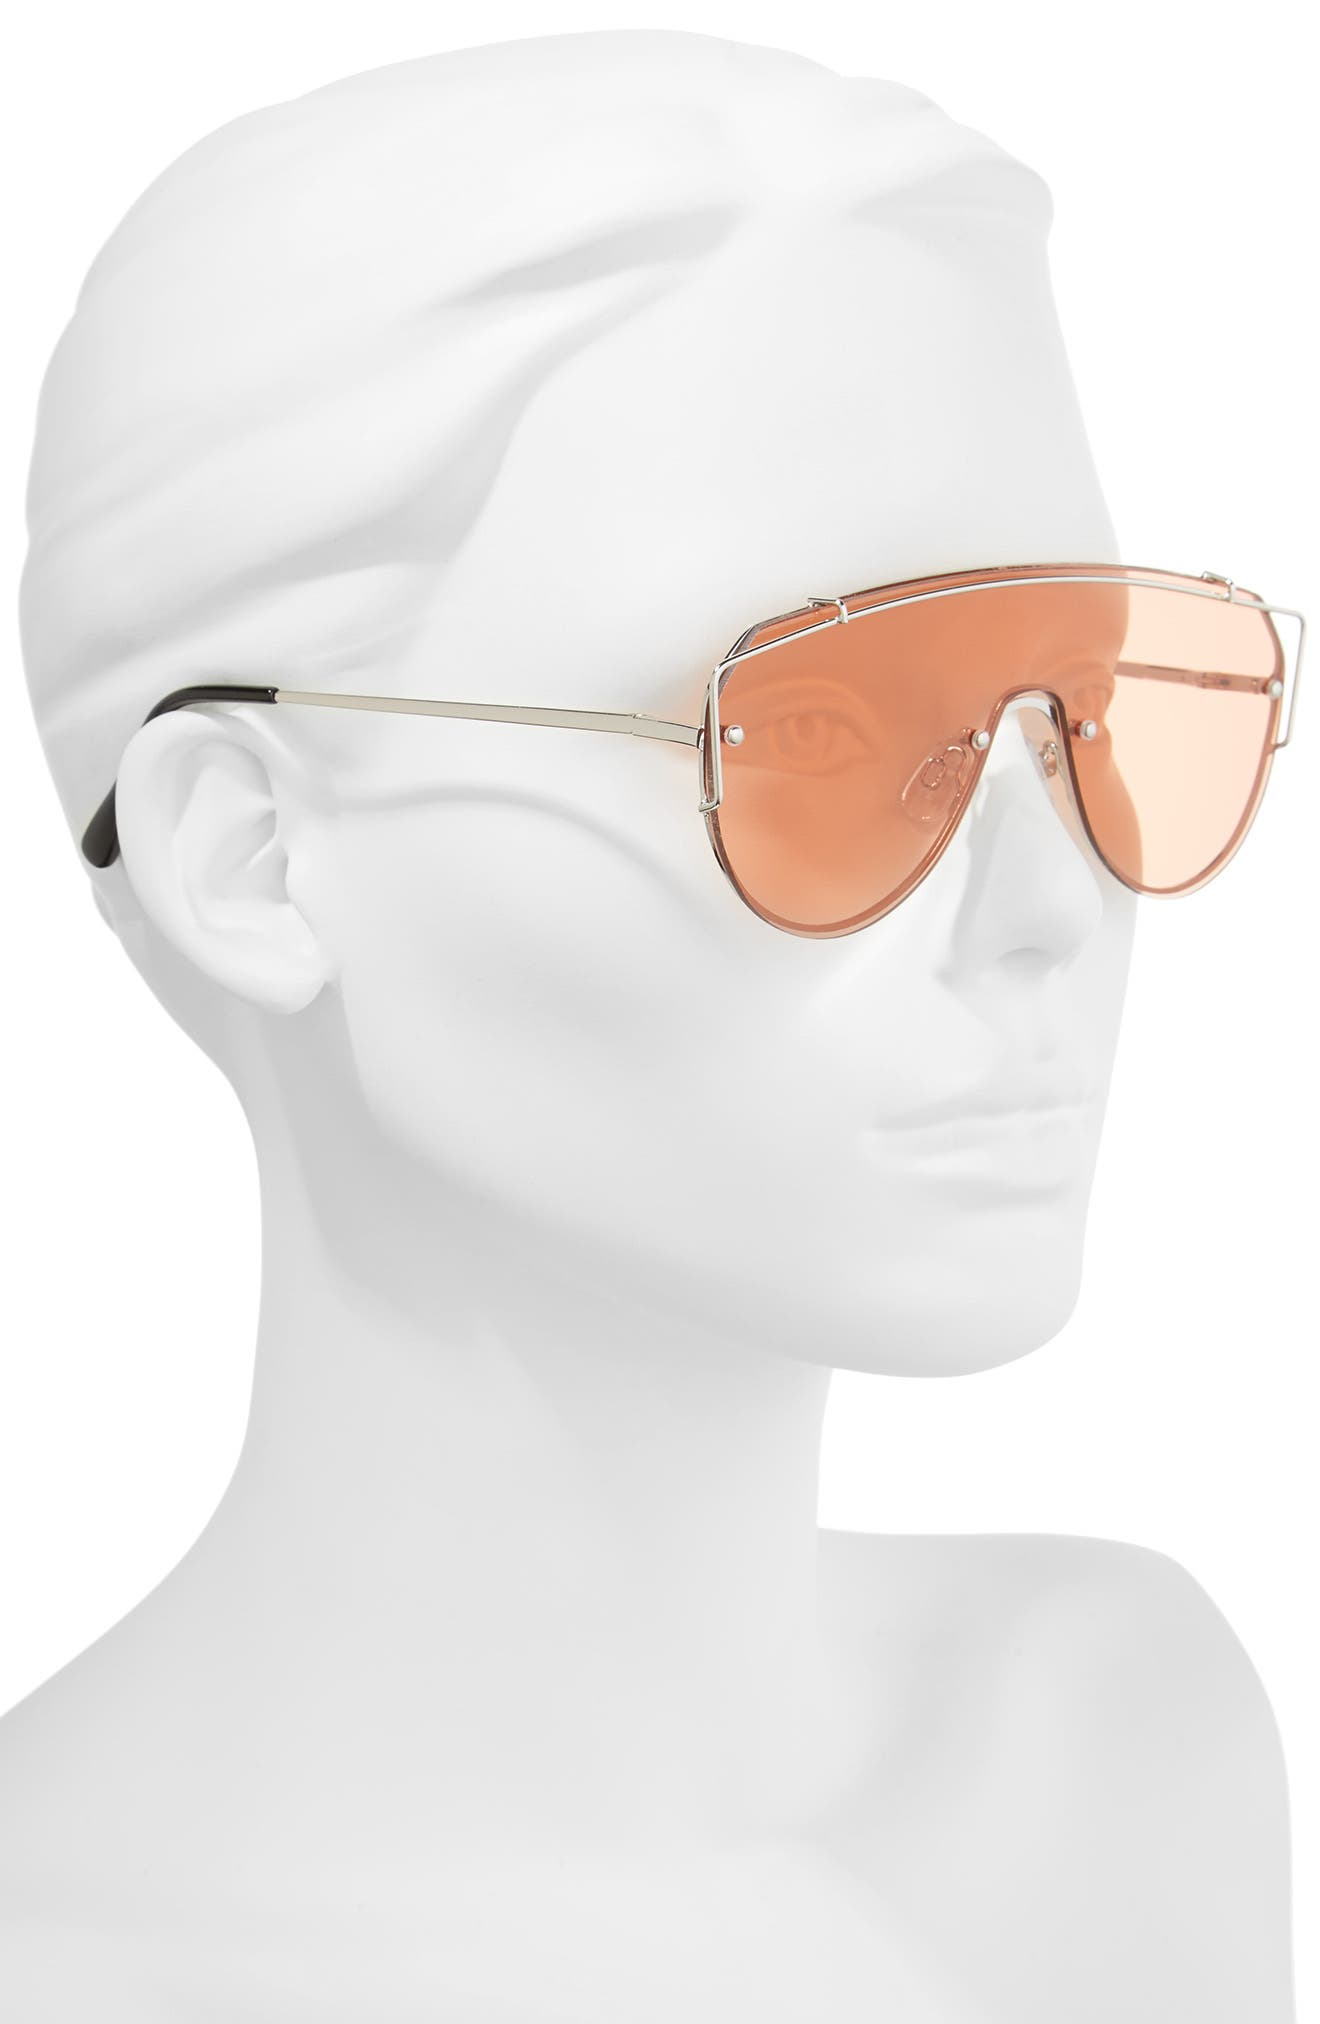 Futuristic 130mm Shield Sunglasses,                             Alternate thumbnail 2, color,                             710